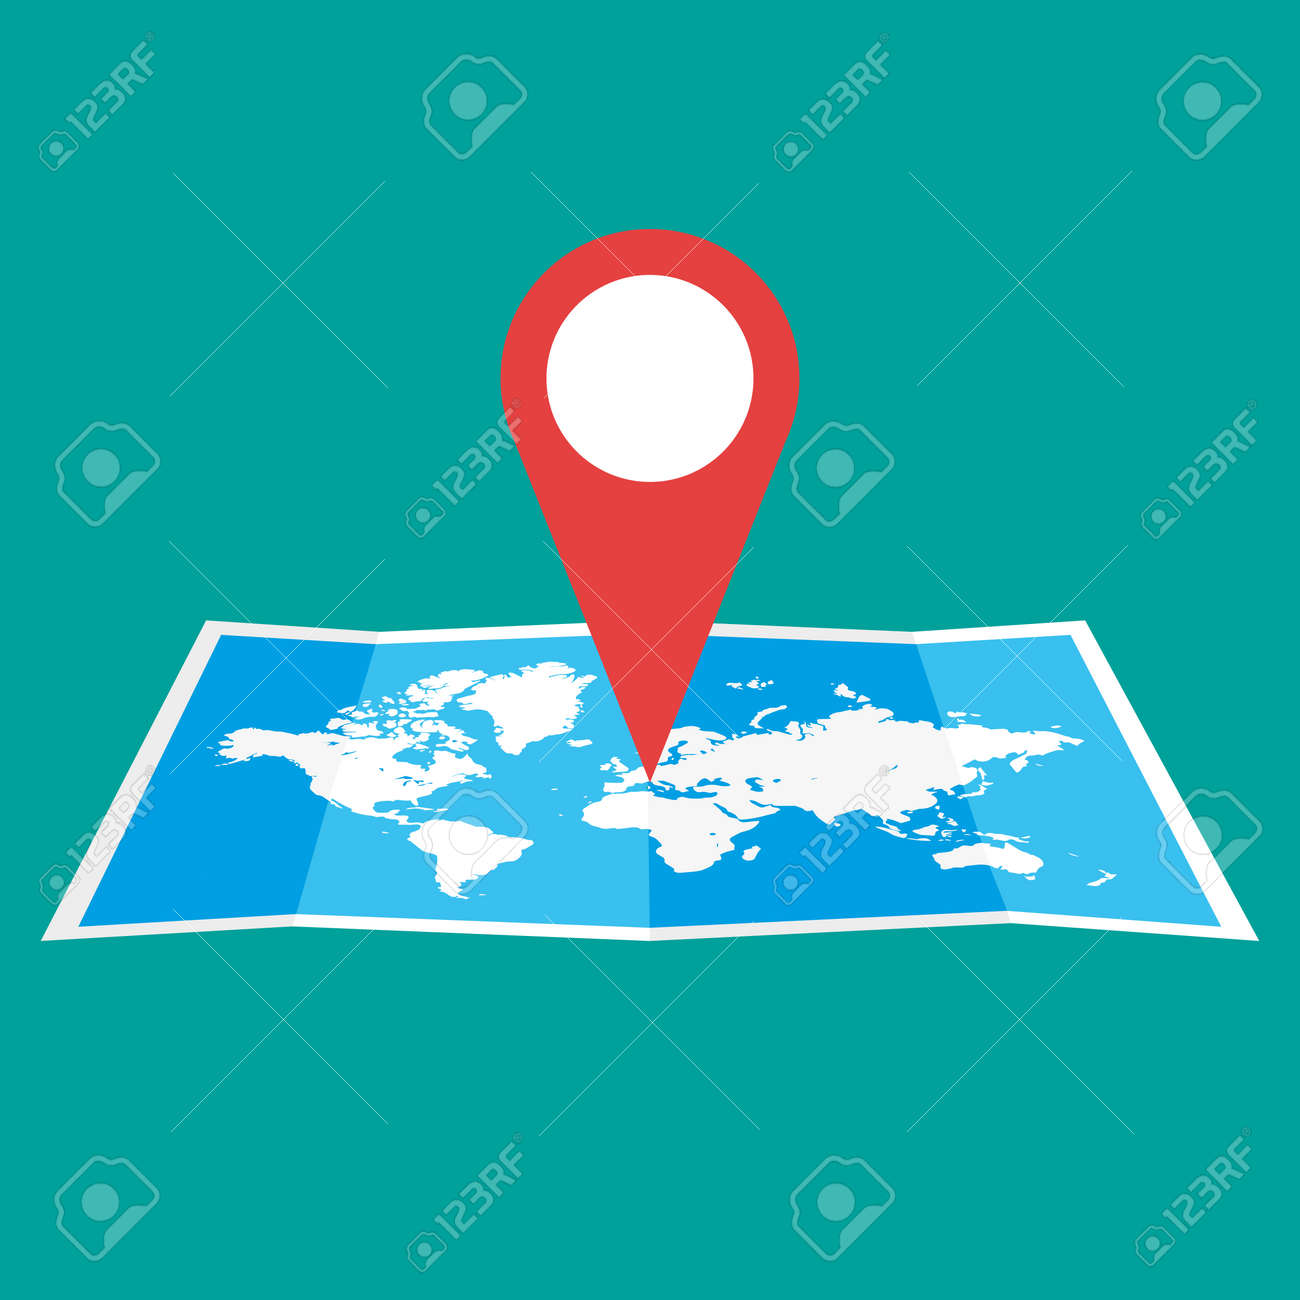 Navigation geolocation icon folded paper world map with red folded paper world map with red pin vector illustration in flat gumiabroncs Choice Image